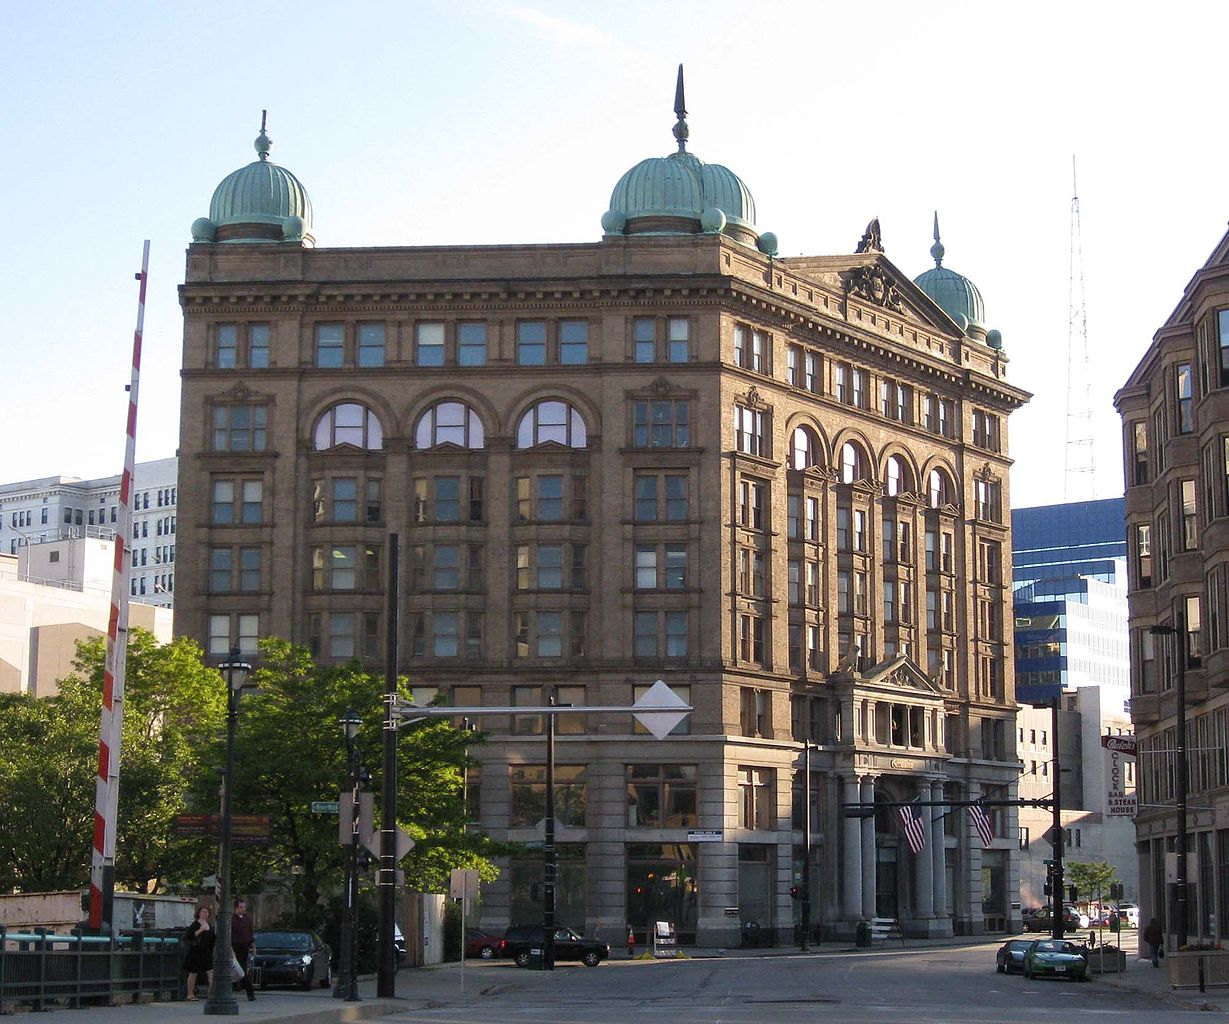 <table class=&quot;lightbox&quot;><tr><td colspan=2 class=&quot;lightbox-title&quot;>Germania Building</td></tr><tr><td colspan=2 class=&quot;lightbox-caption&quot;>Built in 1896, the Germania Building downtown once served as the headquarters of the Brumder Publishing Company. </td></tr><tr><td colspan=2 class=&quot;lightbox-spacer&quot;></td></tr><tr class=&quot;lightbox-detail&quot;><td class=&quot;cell-title&quot;>Source: </td><td class=&quot;cell-value&quot;>From the Wikimedia Commons. <br /><a href=&quot;https://commons.wikimedia.org/wiki/File:Germania_Bldg_Milw_0906.jpg&quot; target=&quot;_blank&quot;>Wikimedia Commons</a></td></tr><tr class=&quot;filler-row&quot;><td colspan=2>&nbsp;</td></tr></table>